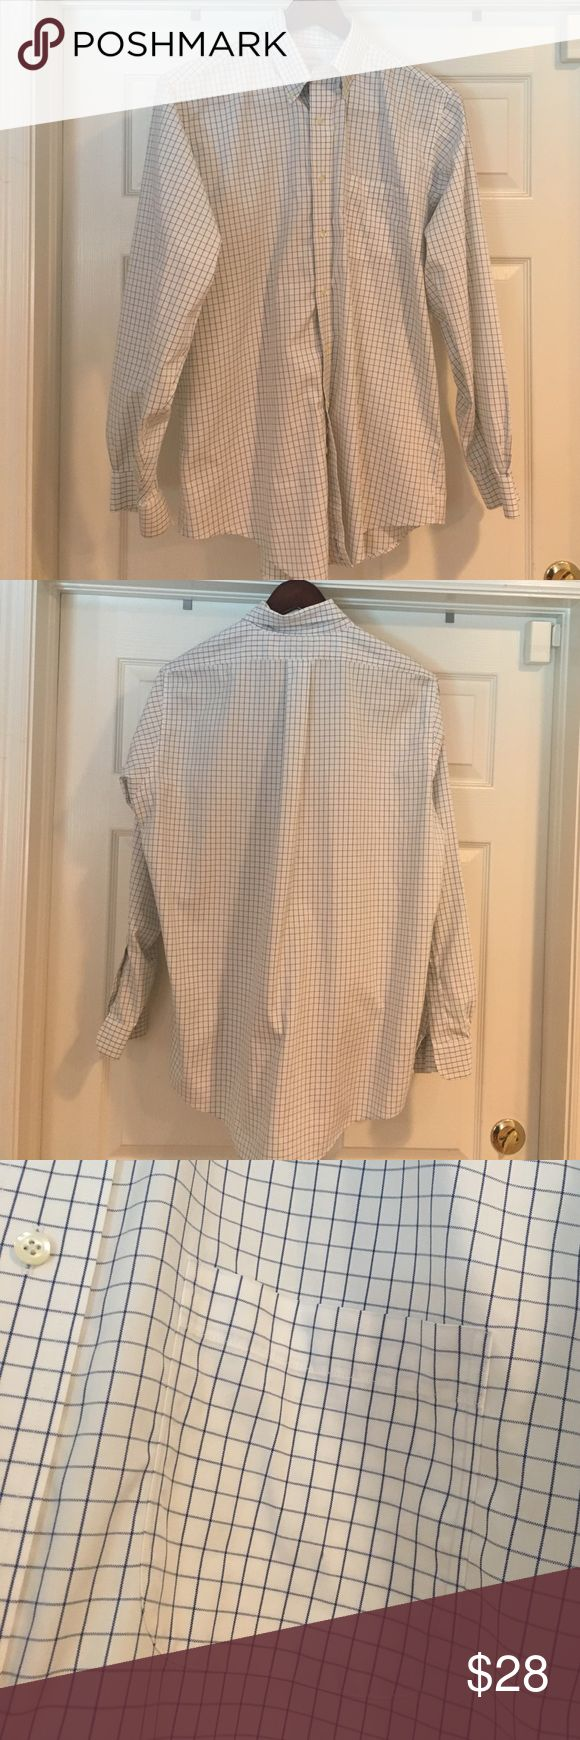 Brooks Brothers long sleeve dress shirt Brooks Brother Original Polo Shirt.  White with blue lines.  Has pocket in chest and long sleeves..  100% cotton Non-Iron.  Has button collar stays.  Size 16 34/35.  No stains or tears.  In great condition.. Brooks Brothers Shirts Dress Shirts